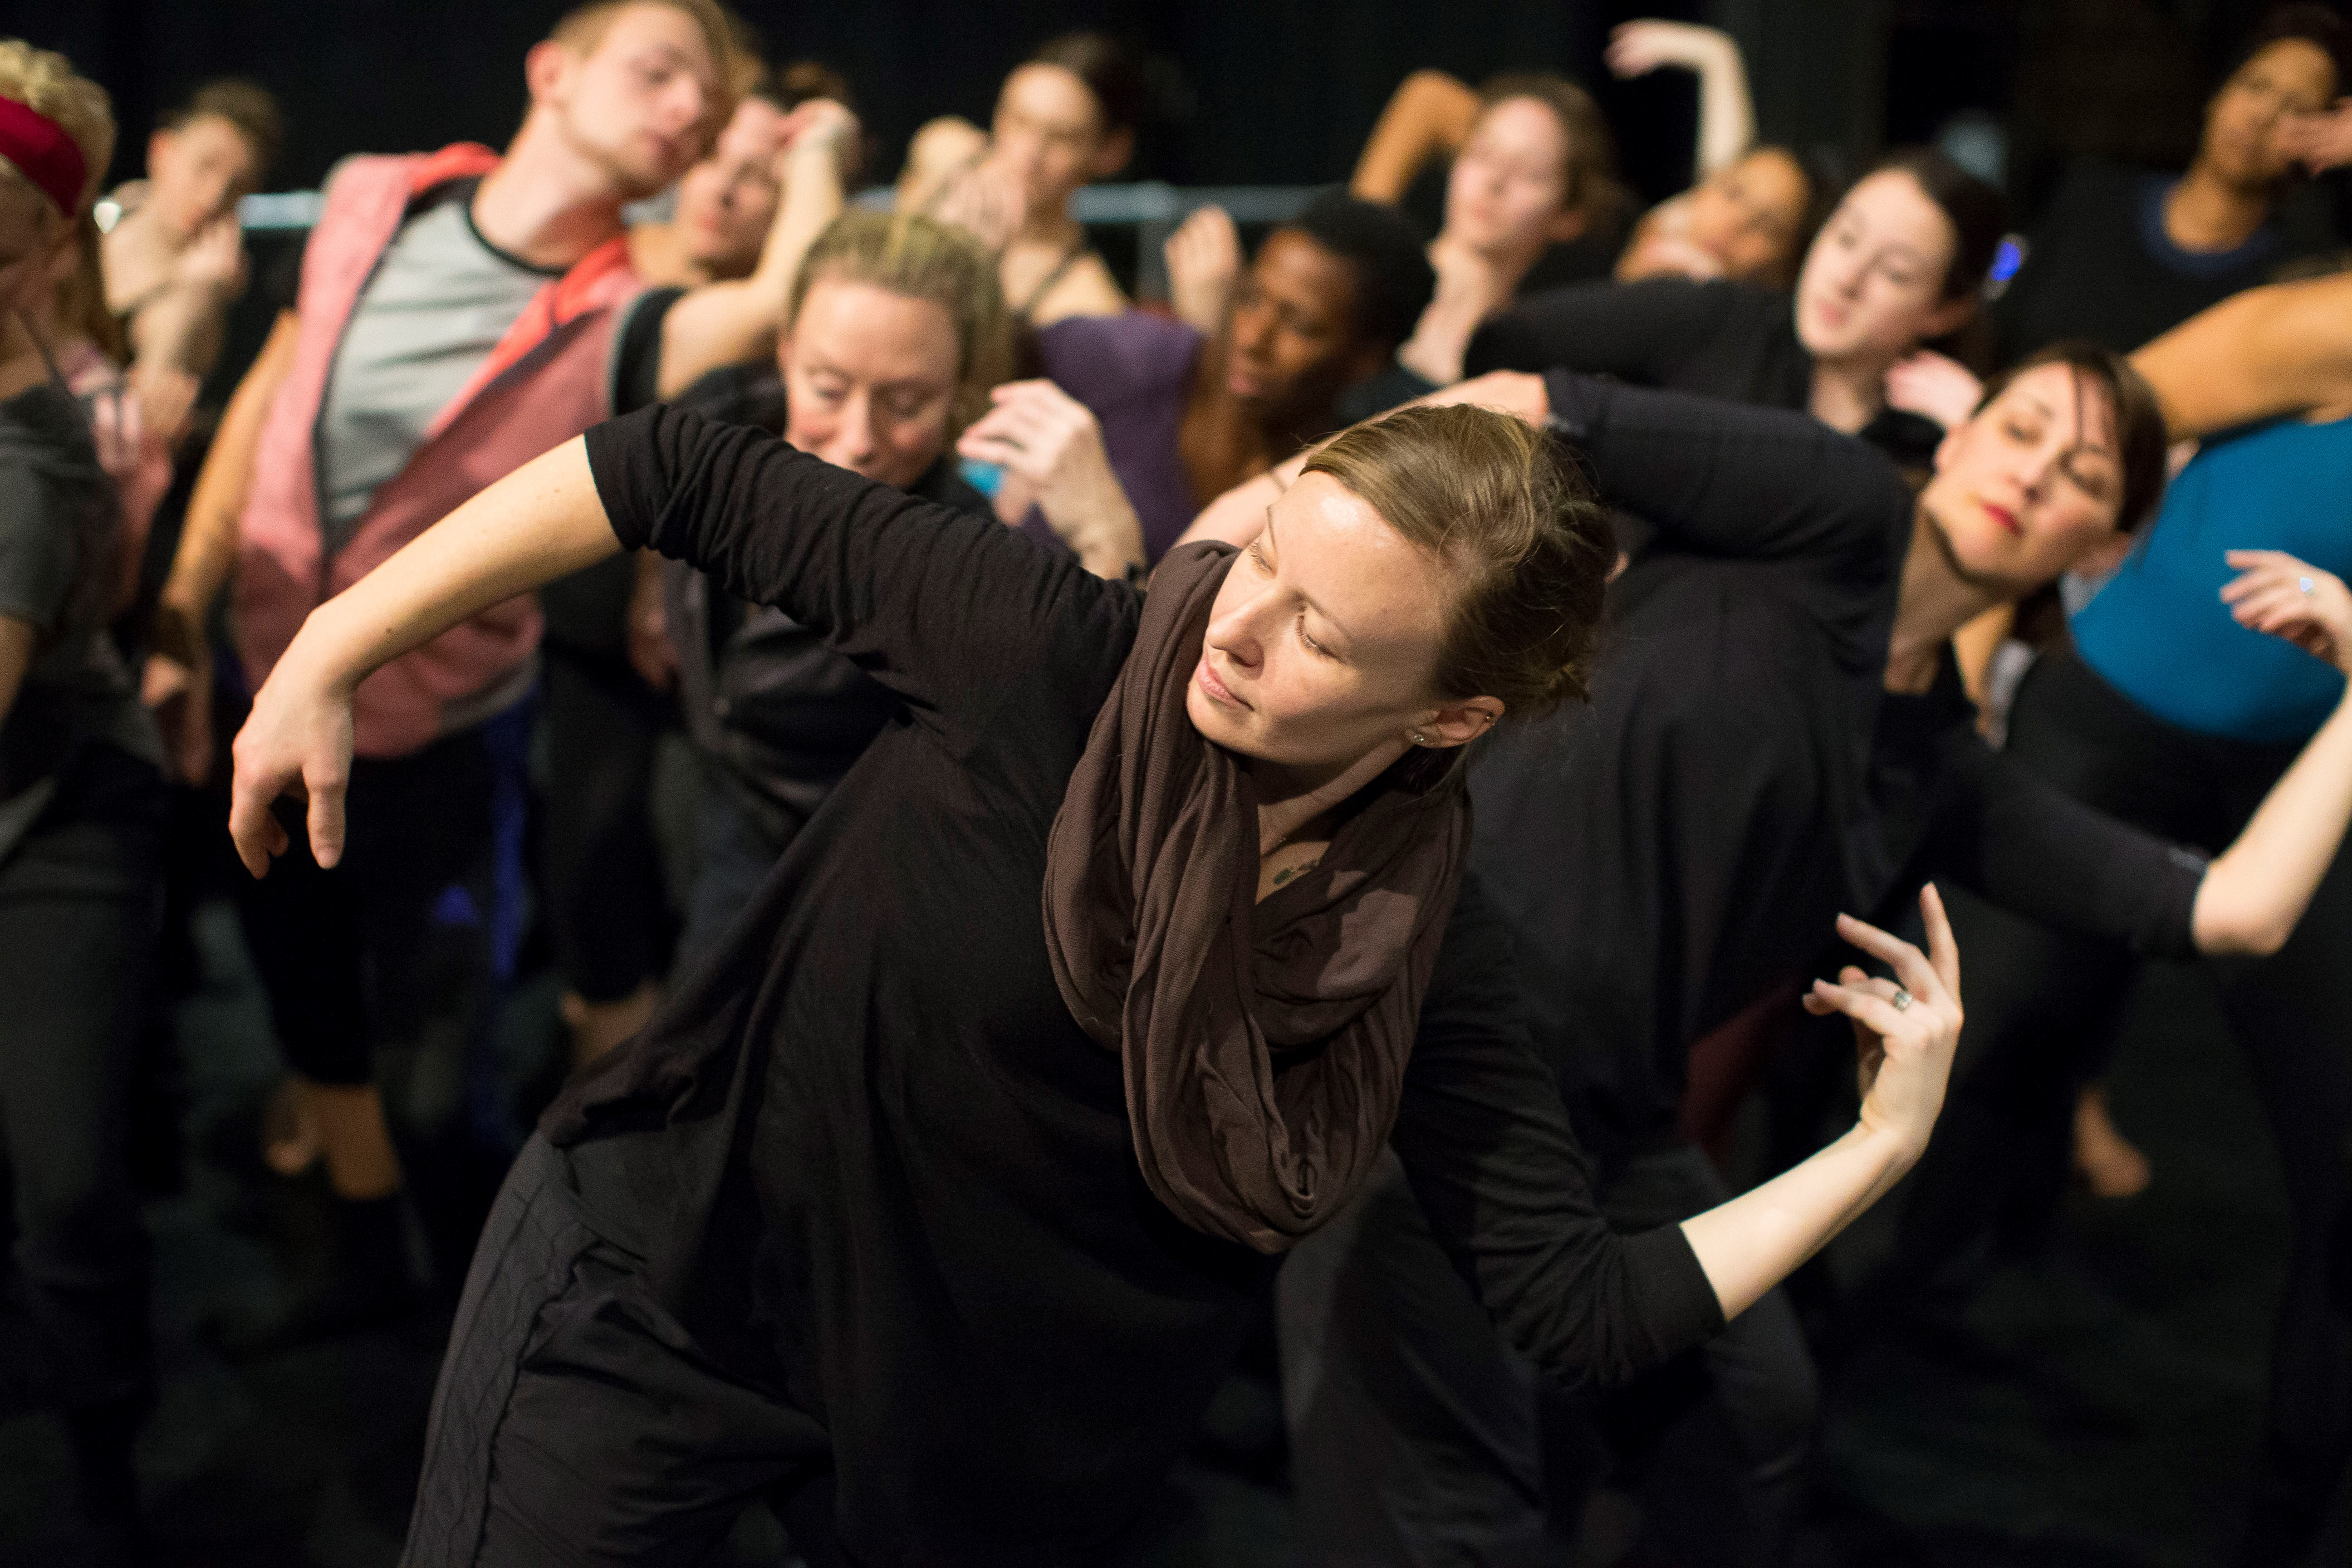 Woman in brown scarf leads class through dance techniques